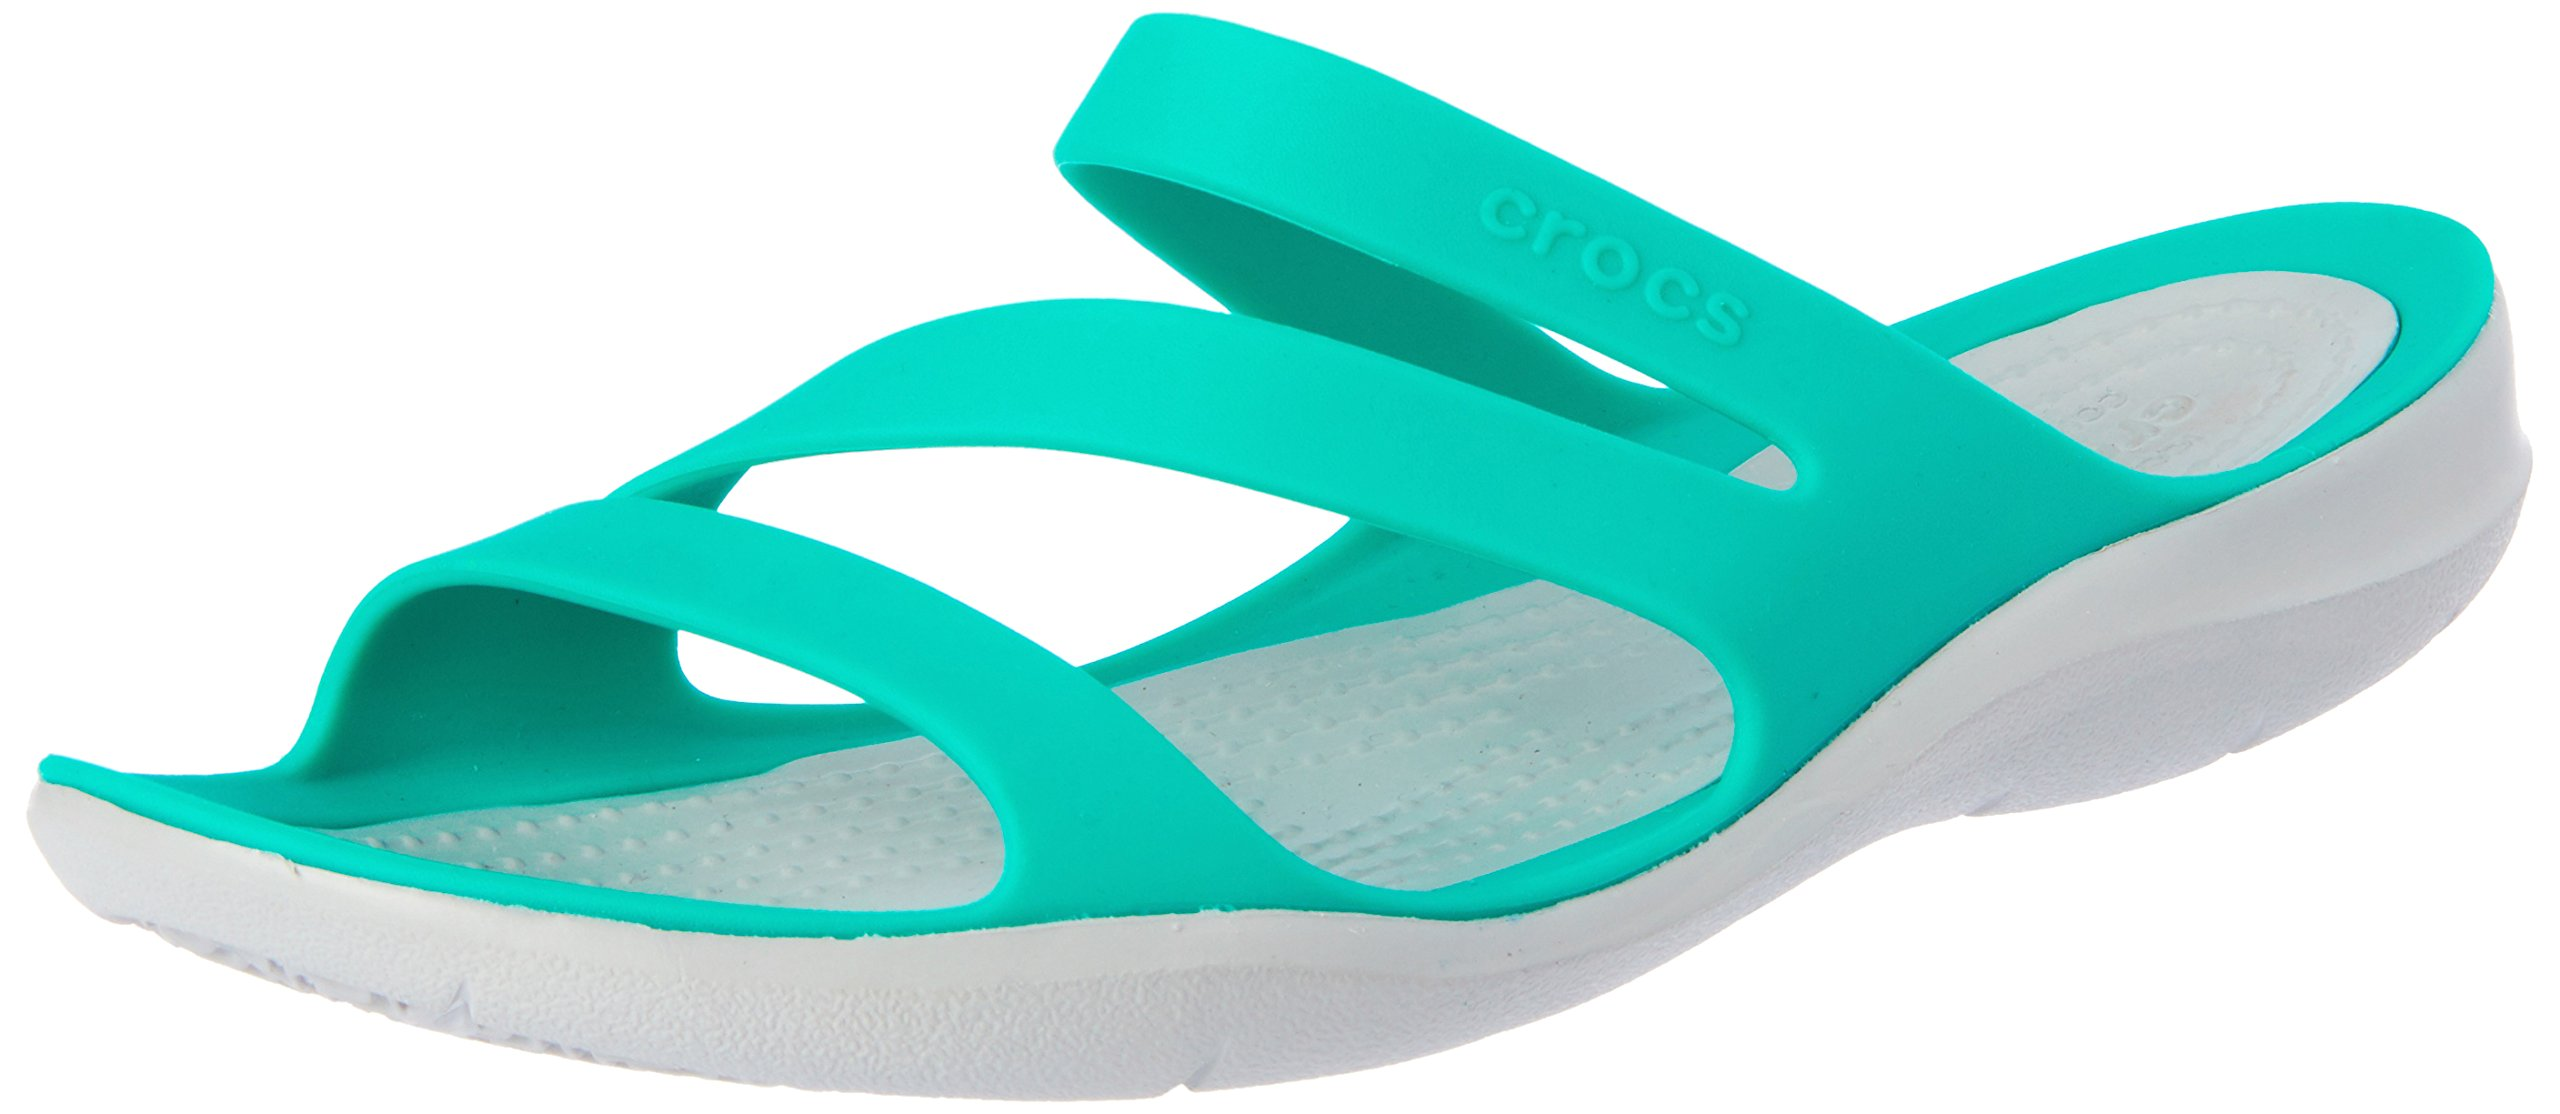 Crocs Women's Swiftwater Sandal, Tropical Teal/Light Grey, 9 M US